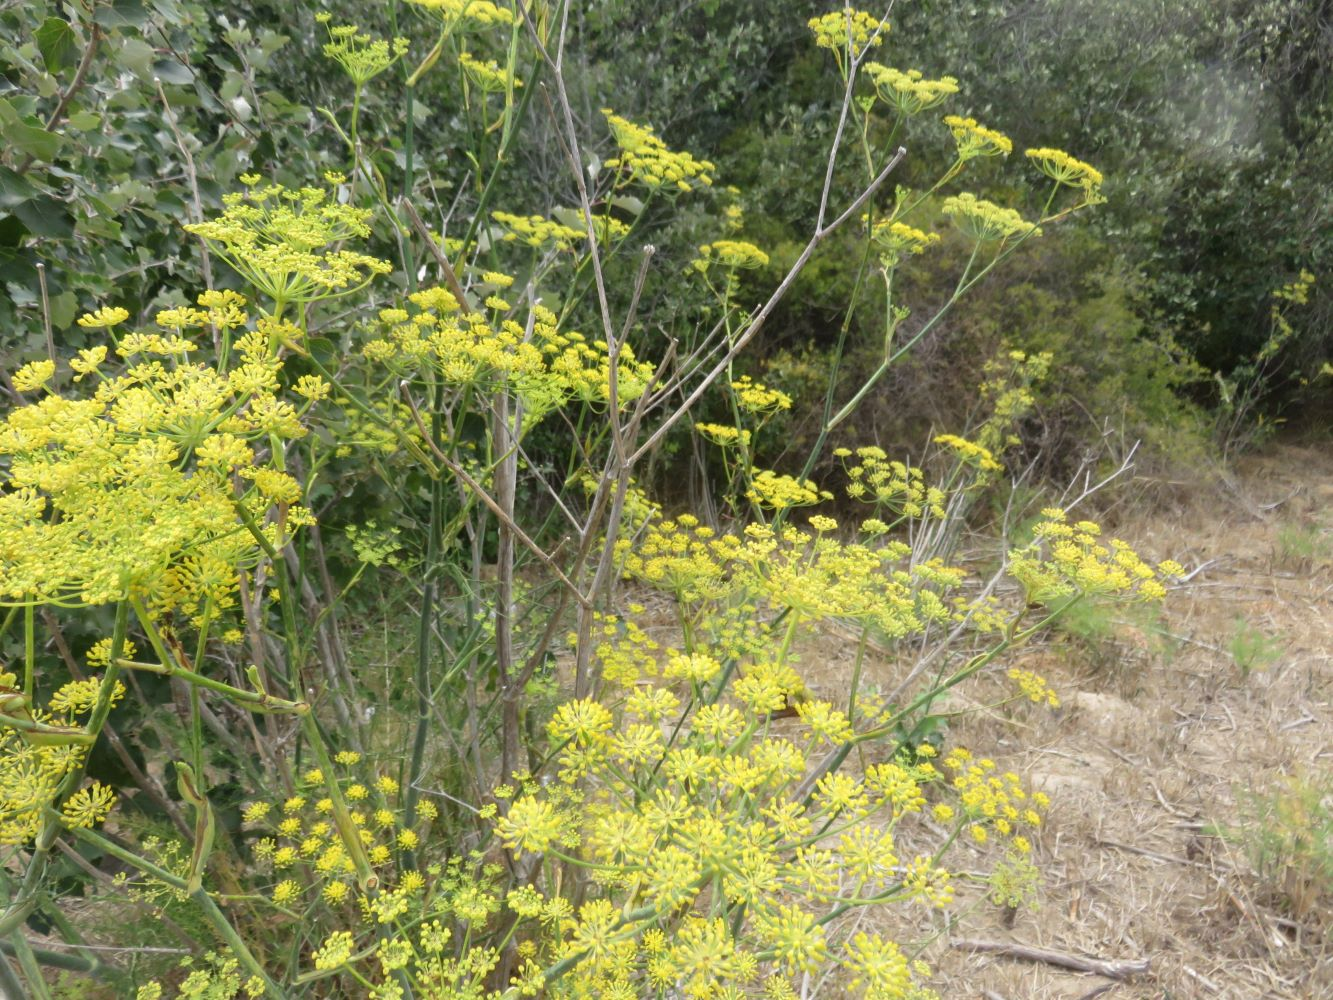 Worlds within worlds: naturalized fennel in our own wilderness houses a miniature universe of microbes